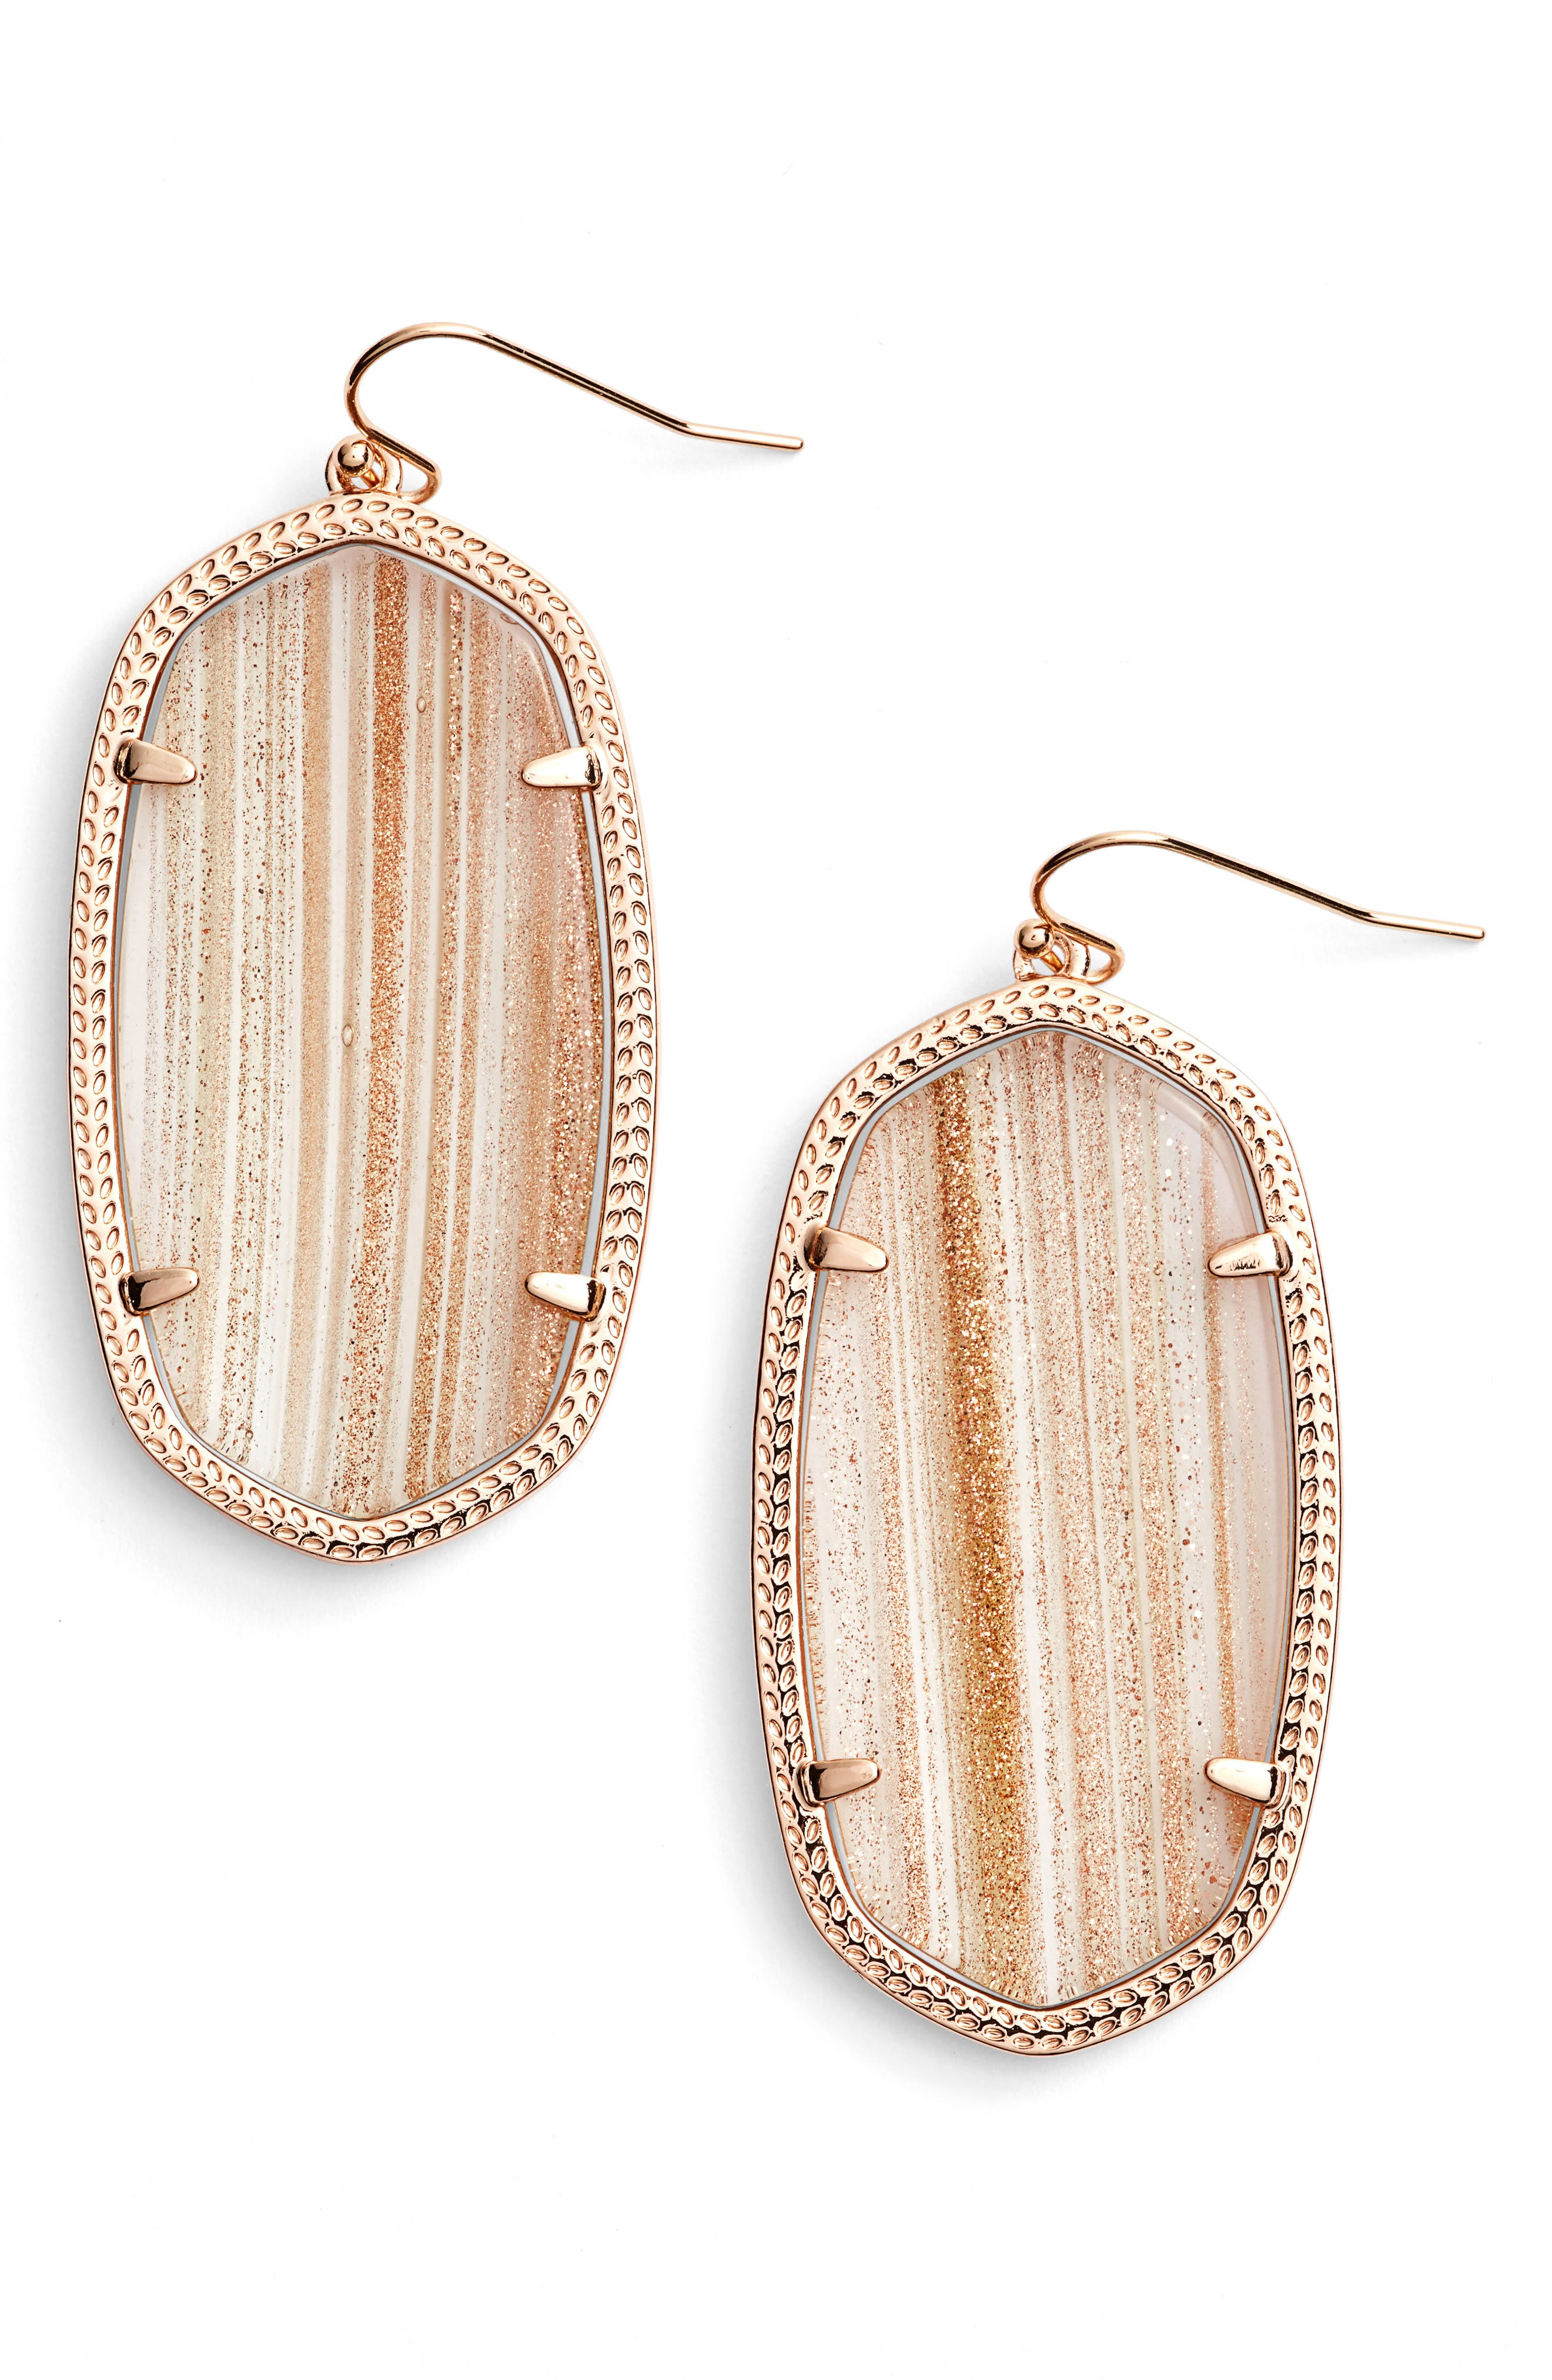 Danielle - Large Oval Statement Earrings,                             Main thumbnail 81, color,